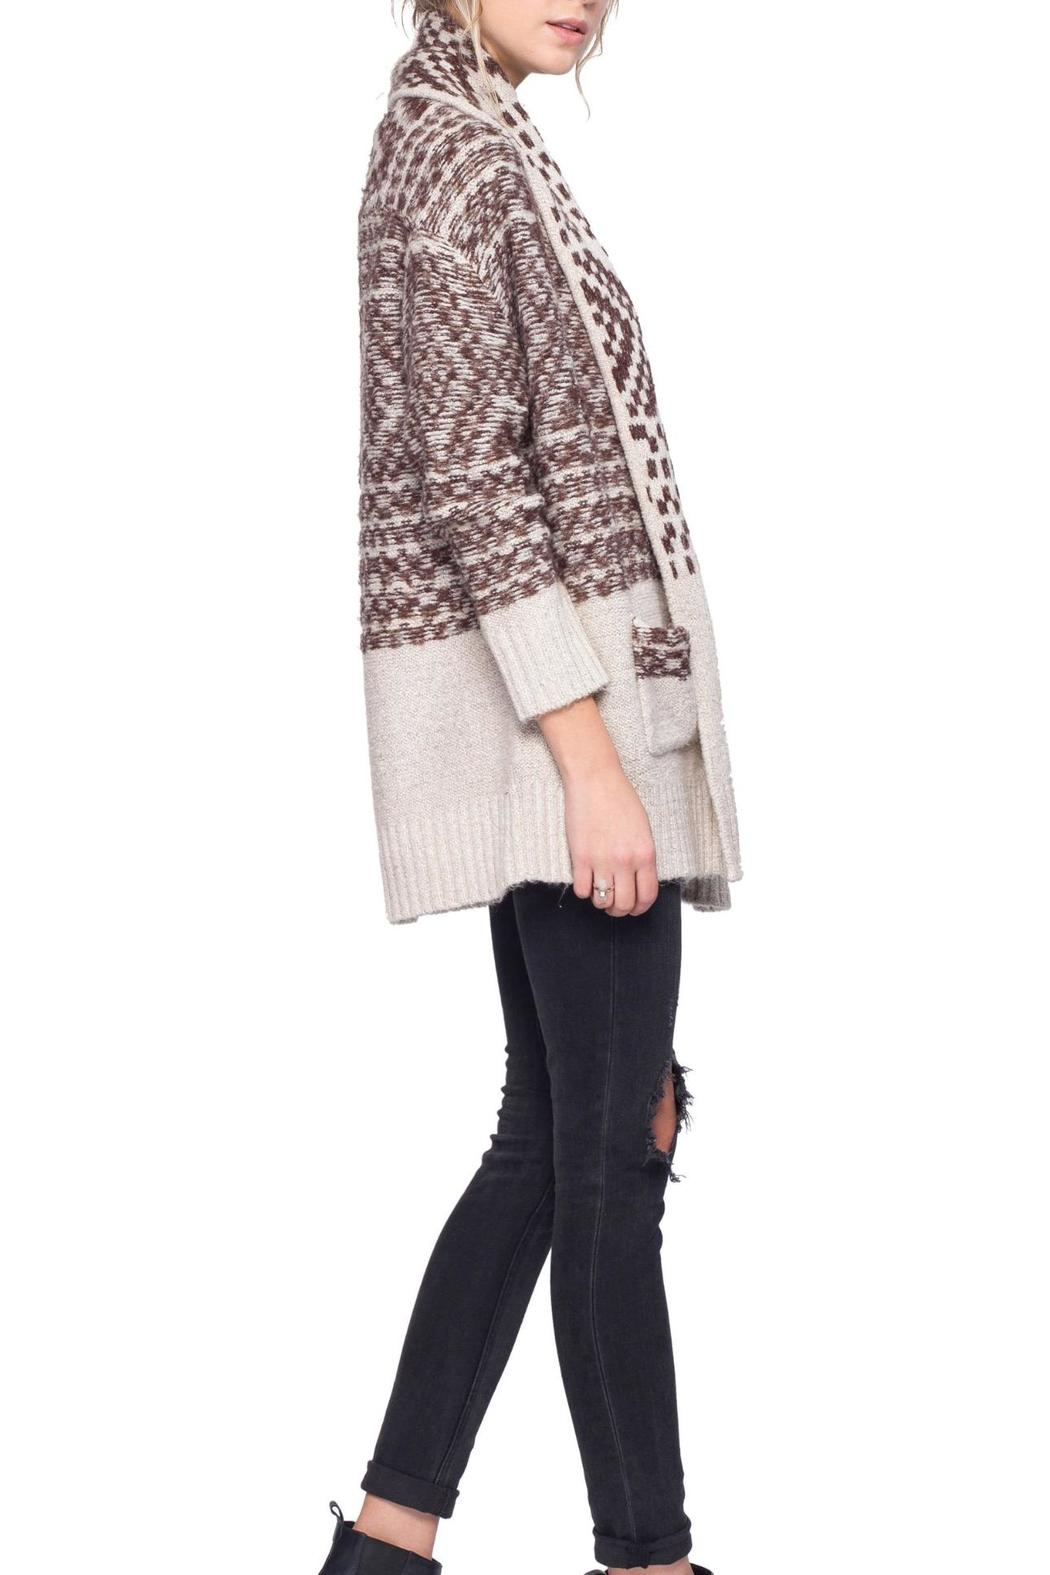 Gentle Fawn Printed Dolly Cardigan - Side Cropped Image